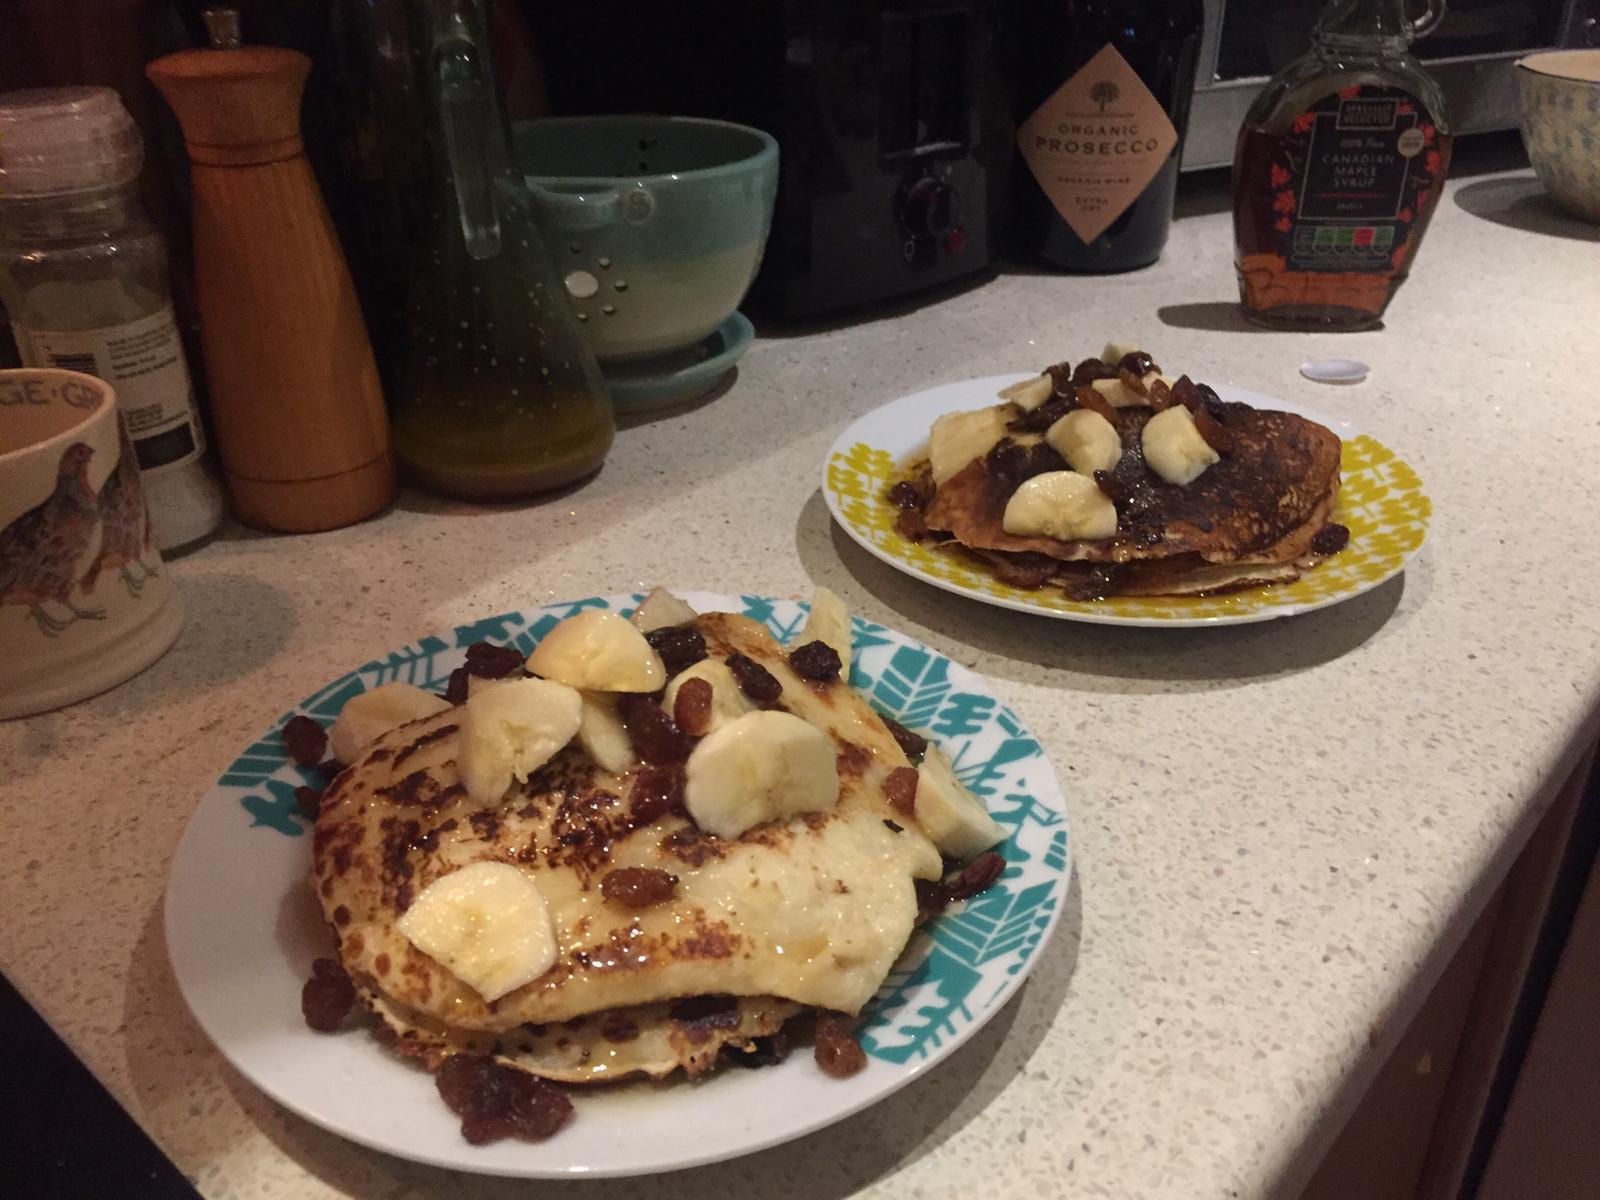 A photo of two plates of pancakes on a kitchen sideboard